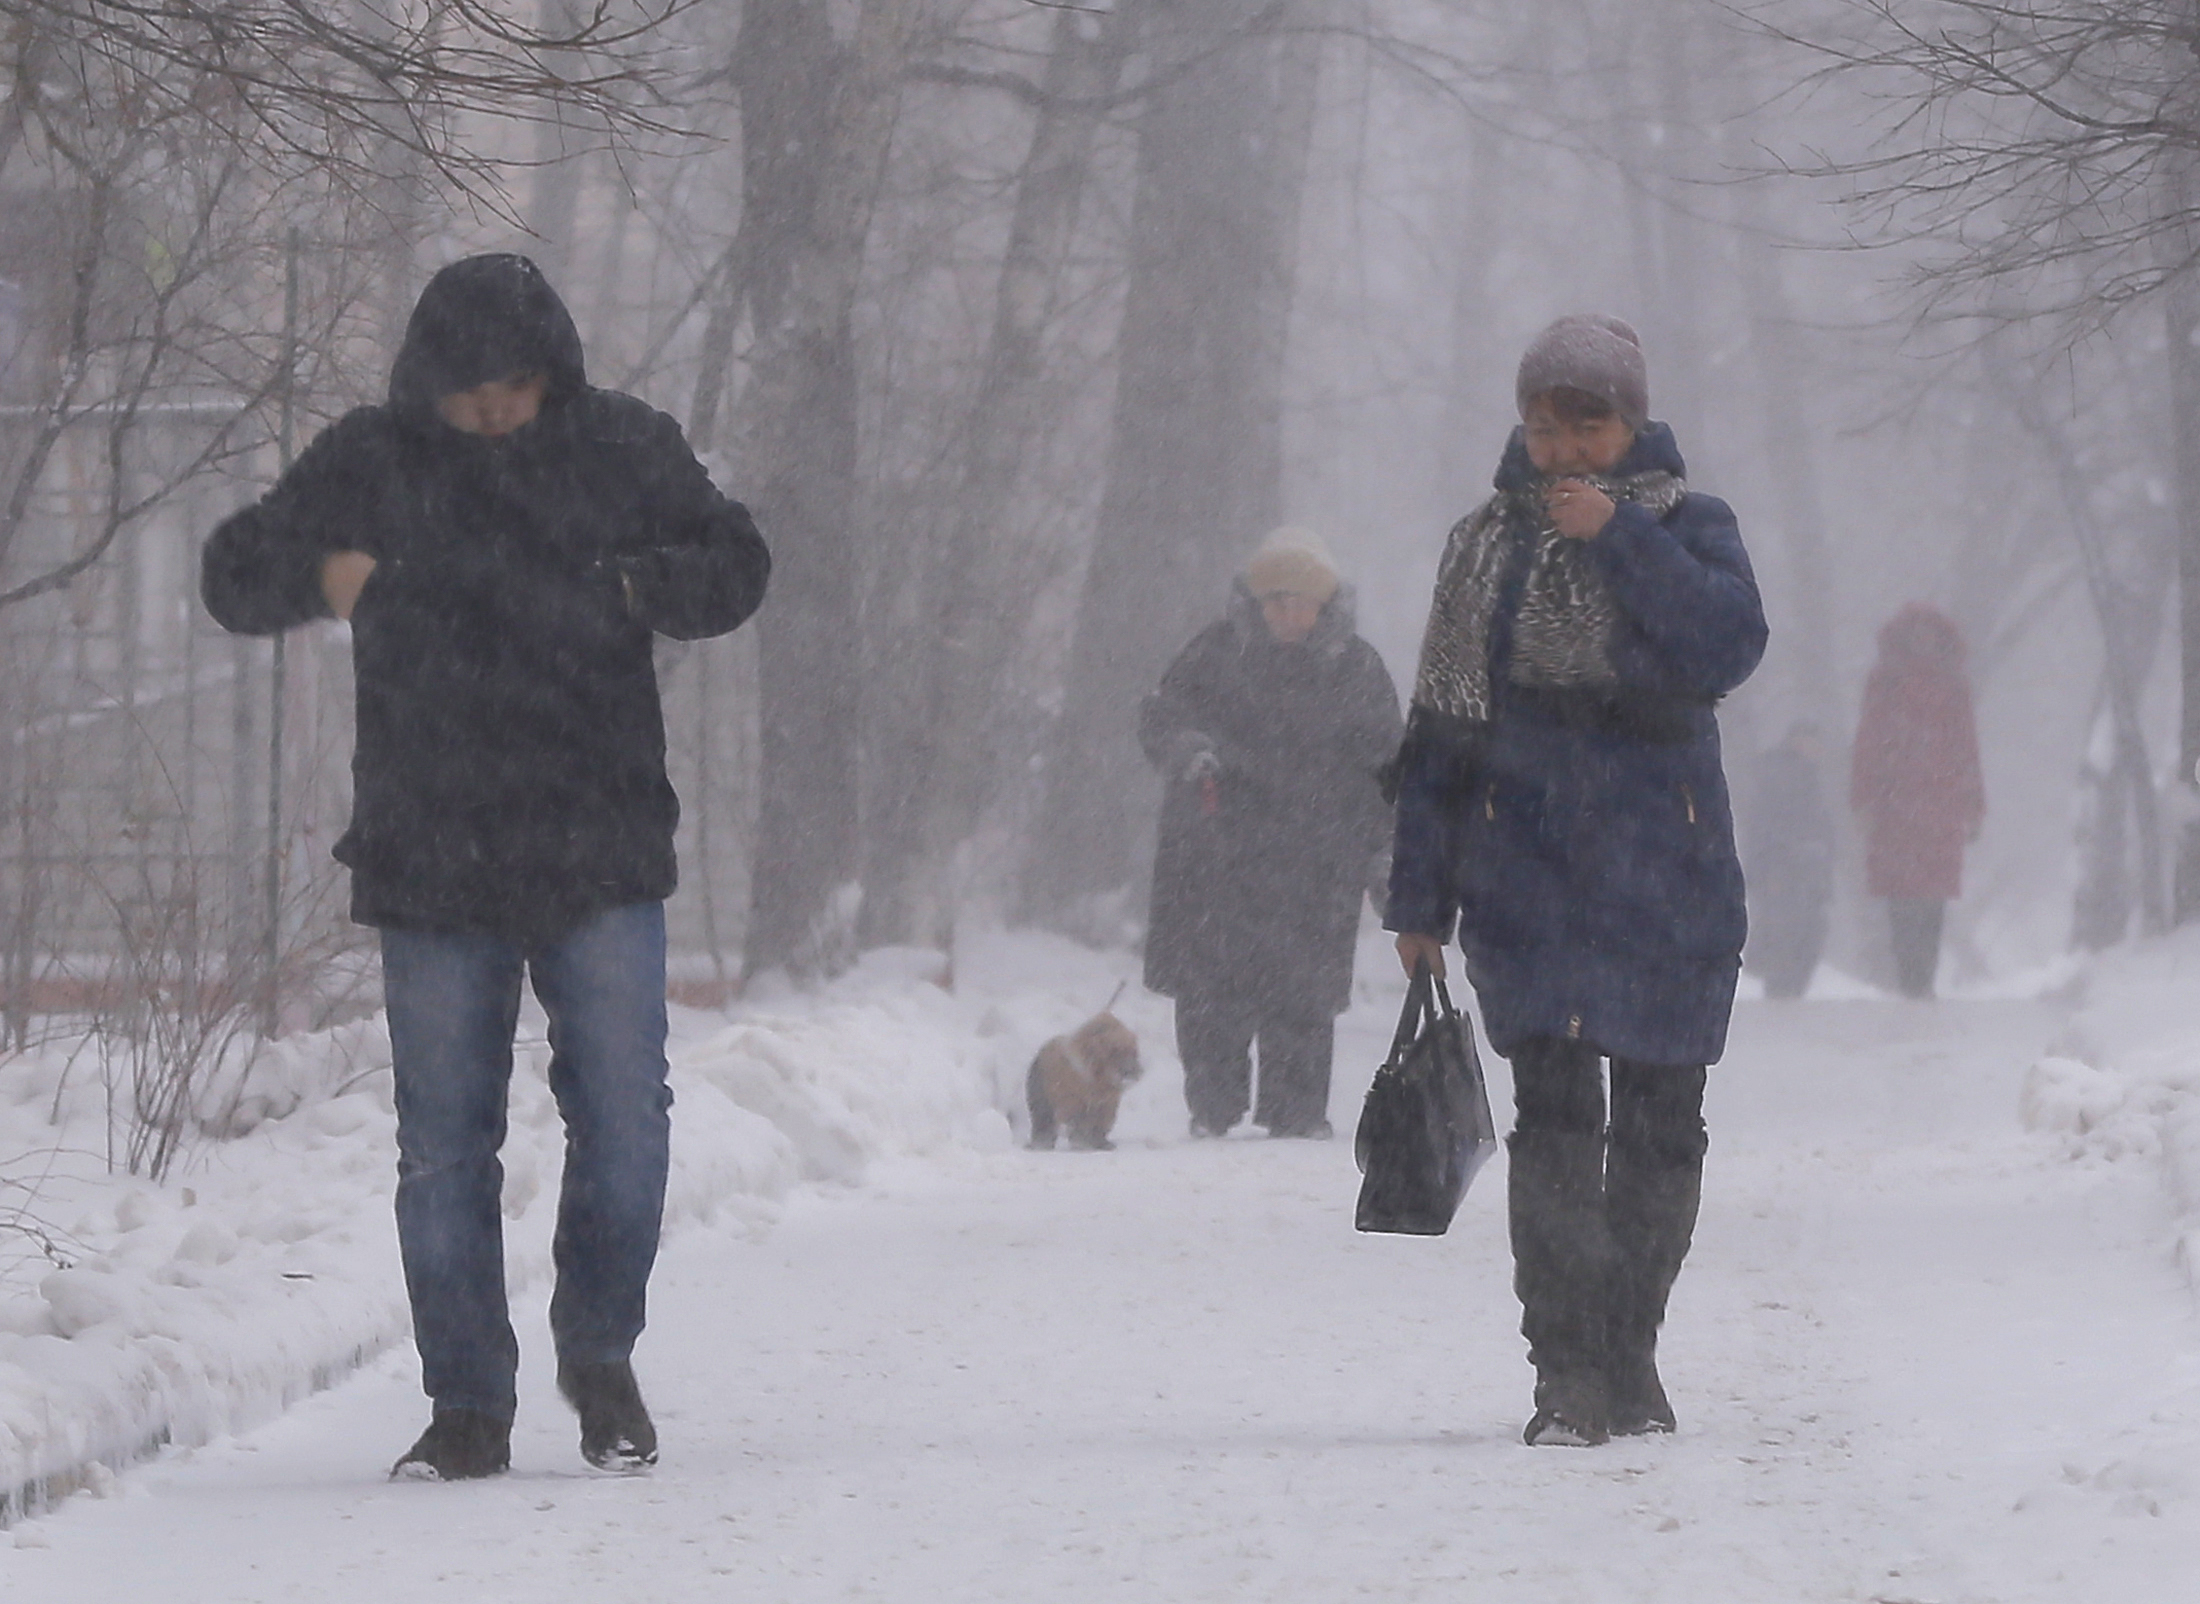 Moscow walk in a blizzard 27